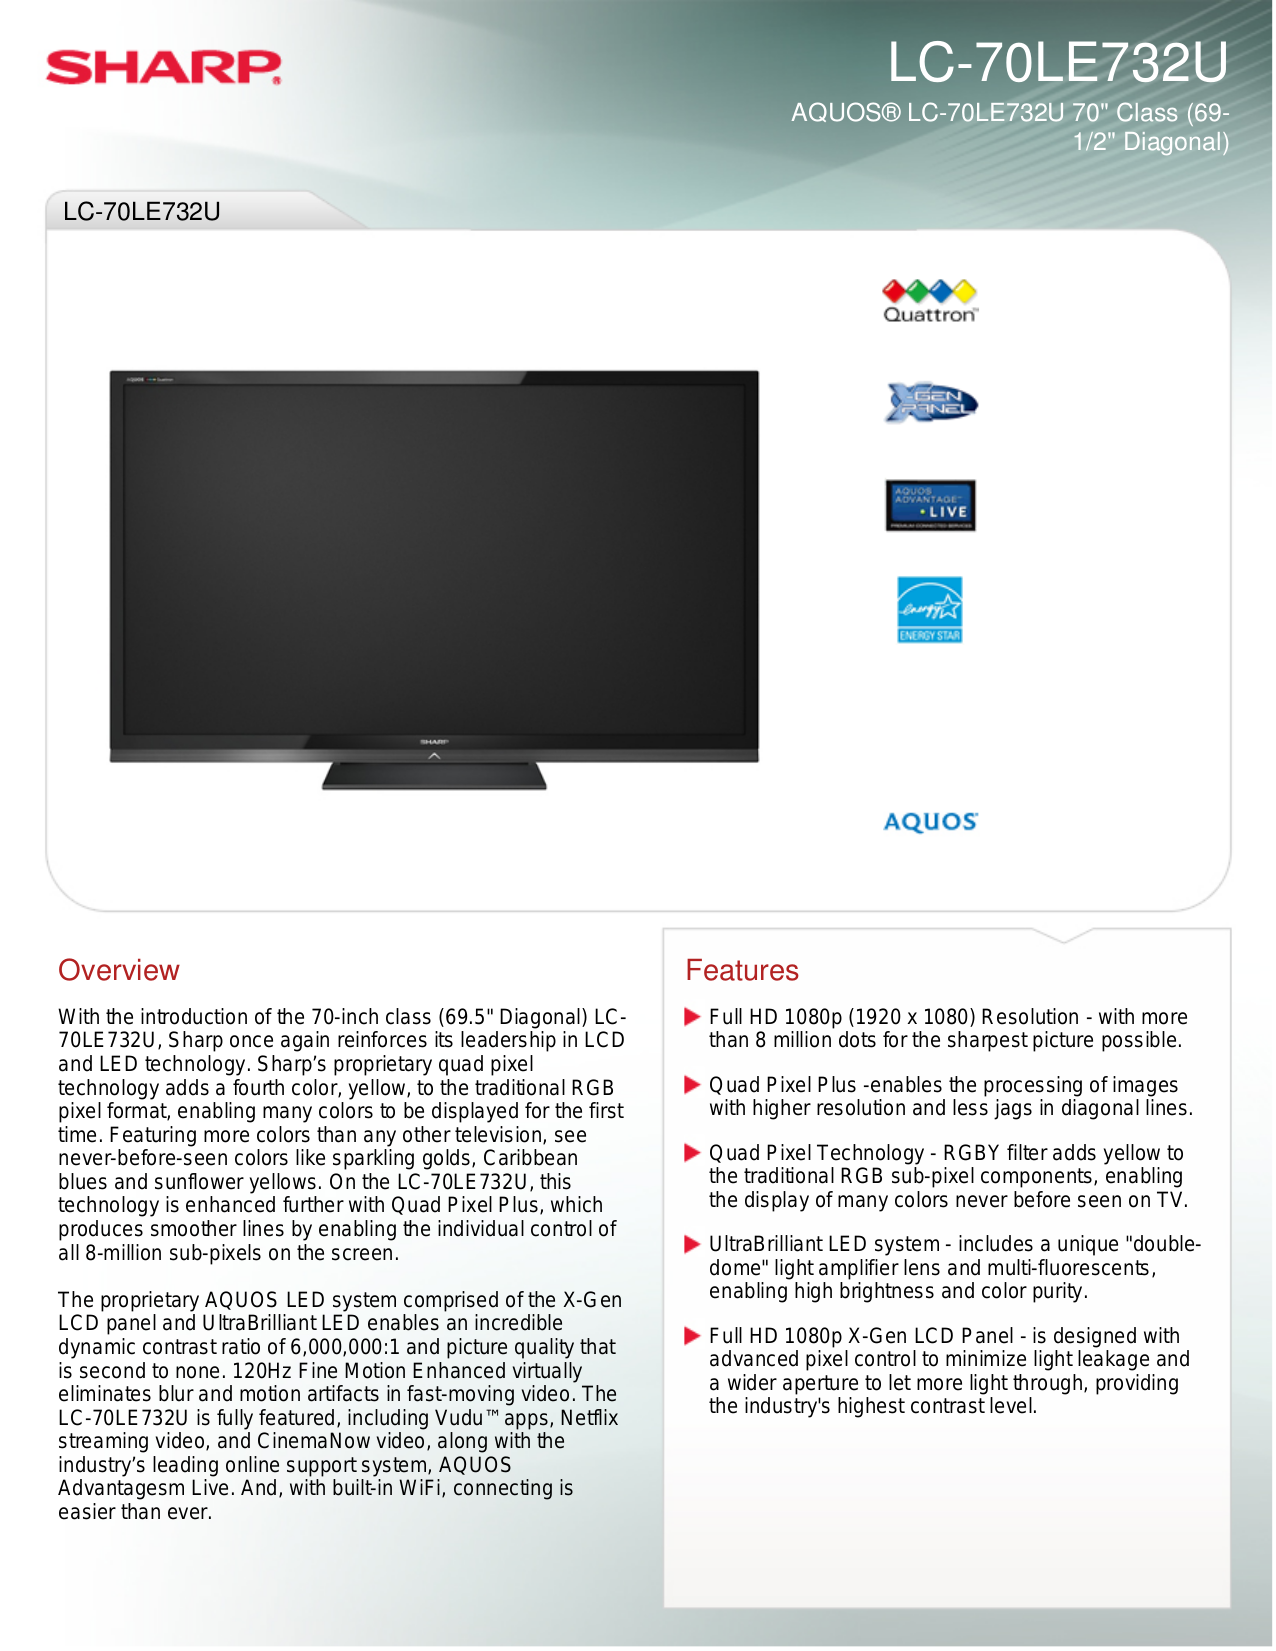 pdf for Sharp TV AQUOS LC-70LE732U manual